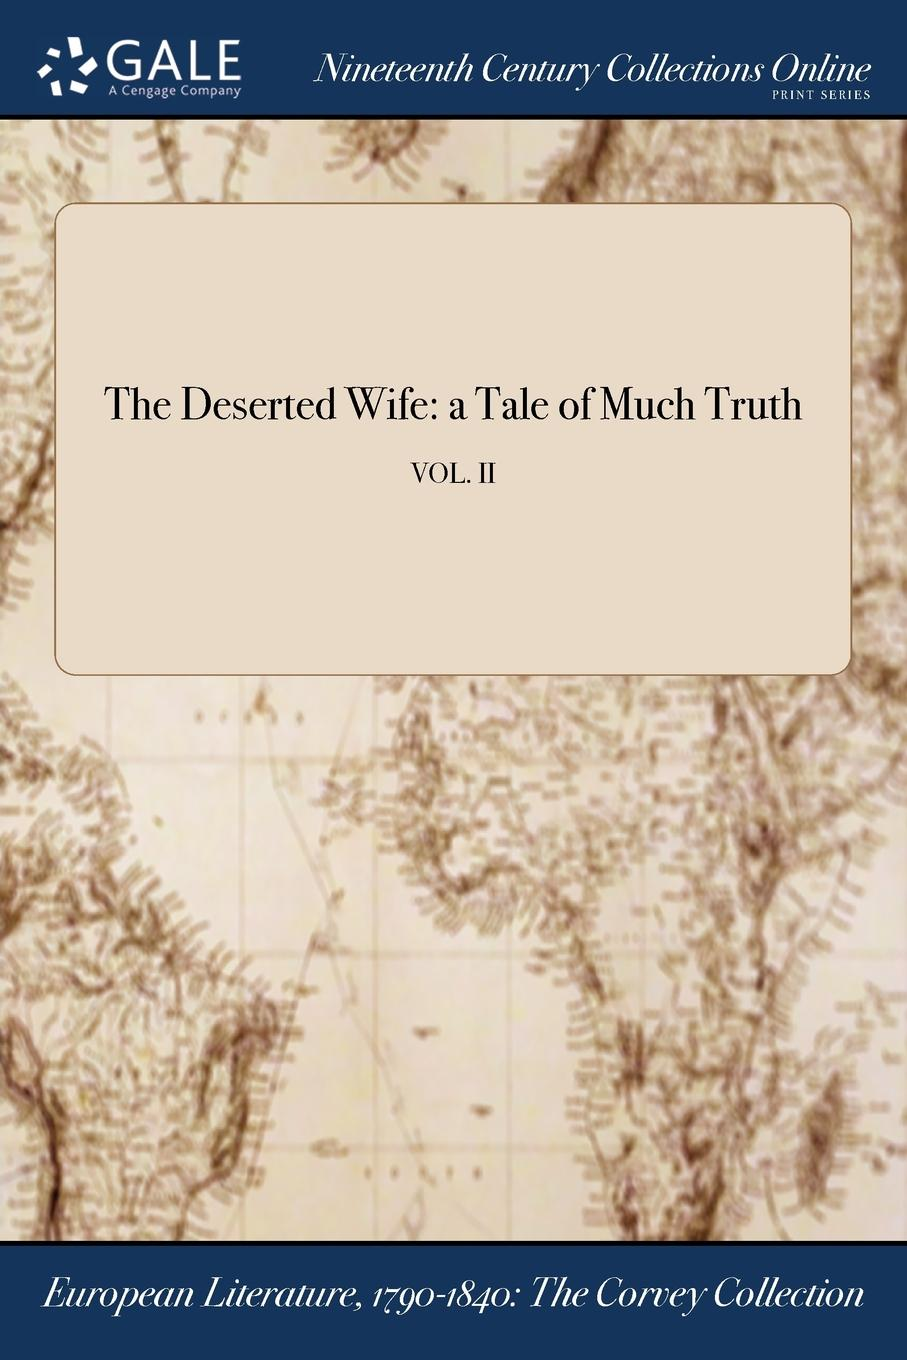 The Deserted Wife. a Tale of Much Truth; VOL. II